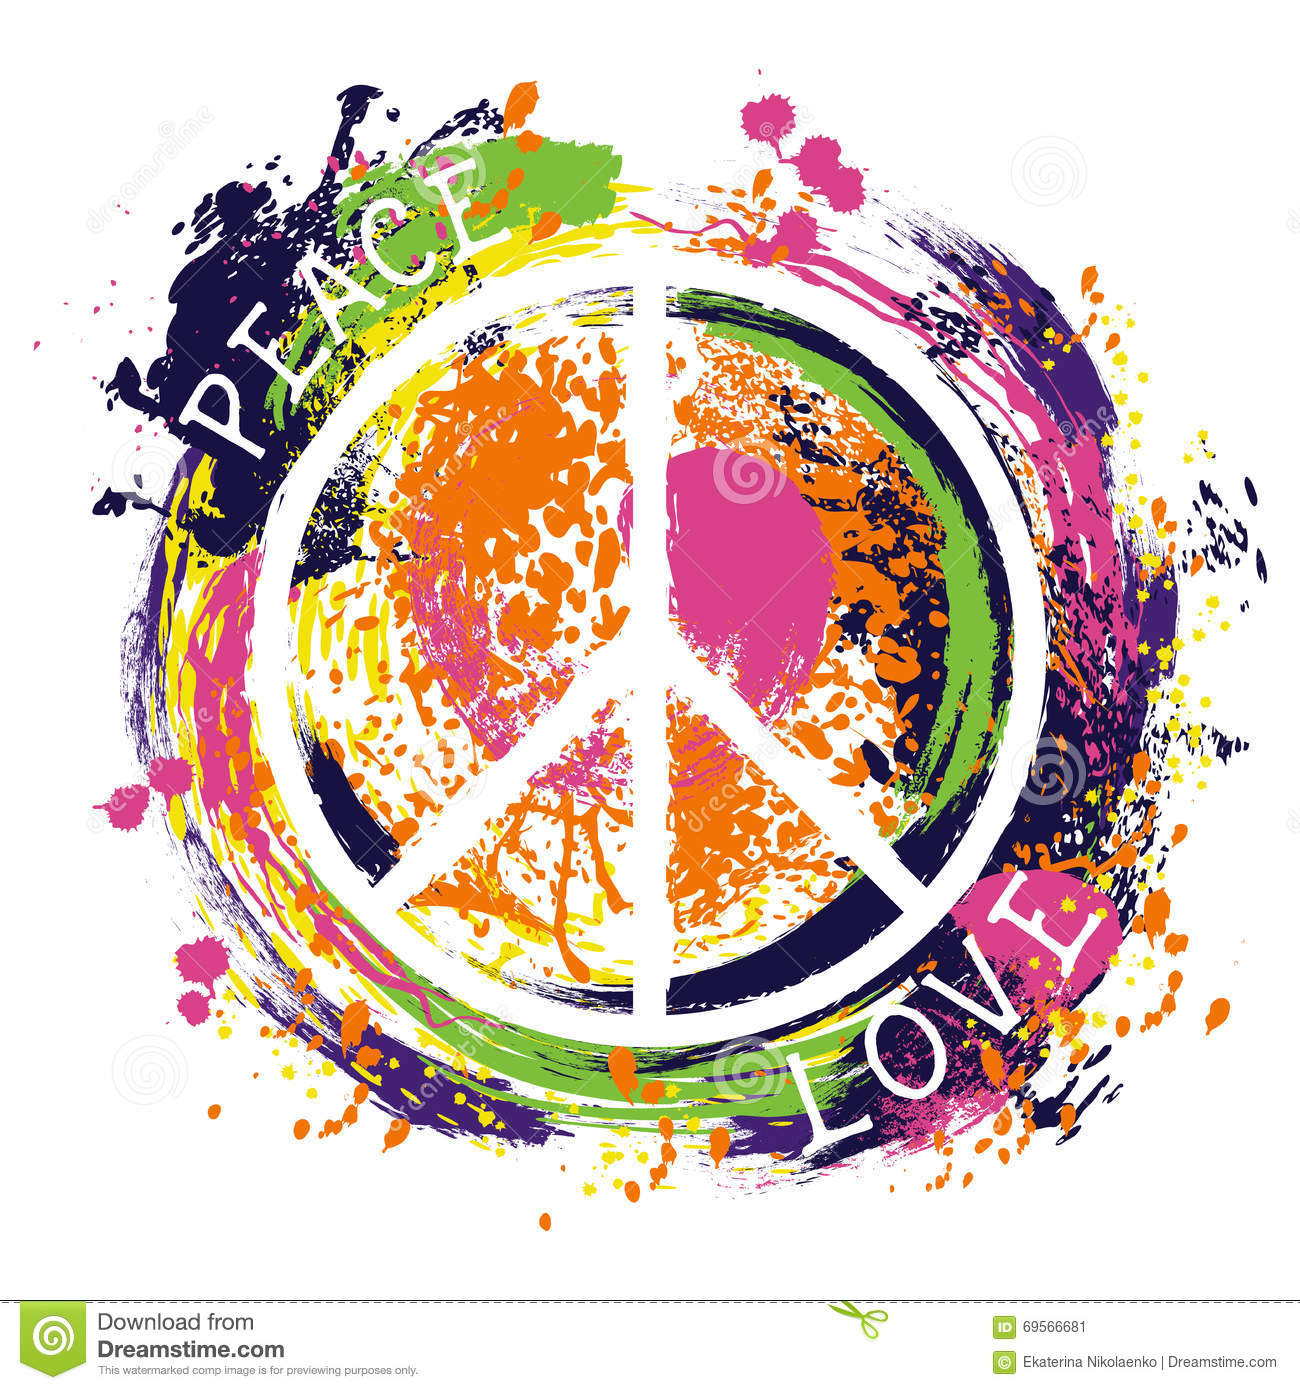 Hippie Peace Symbol Peace And Love Colorful Hand Drawn Grunge